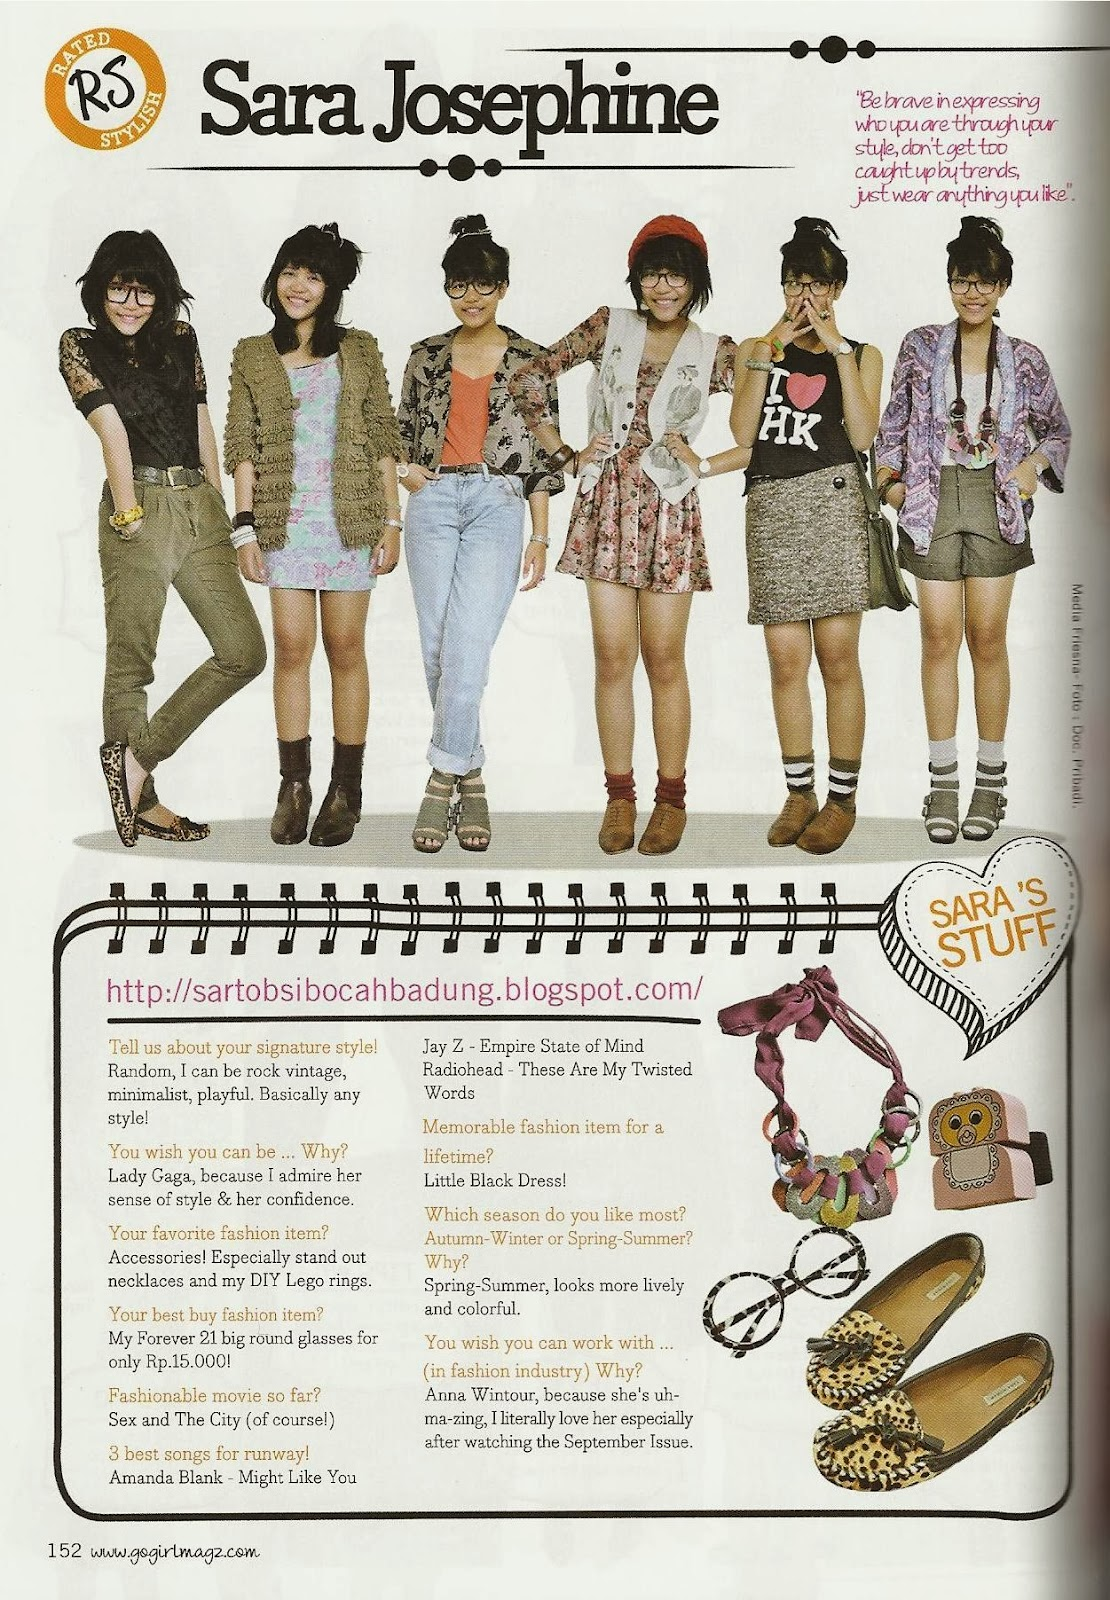 Gogirl Magazine Apr 2011